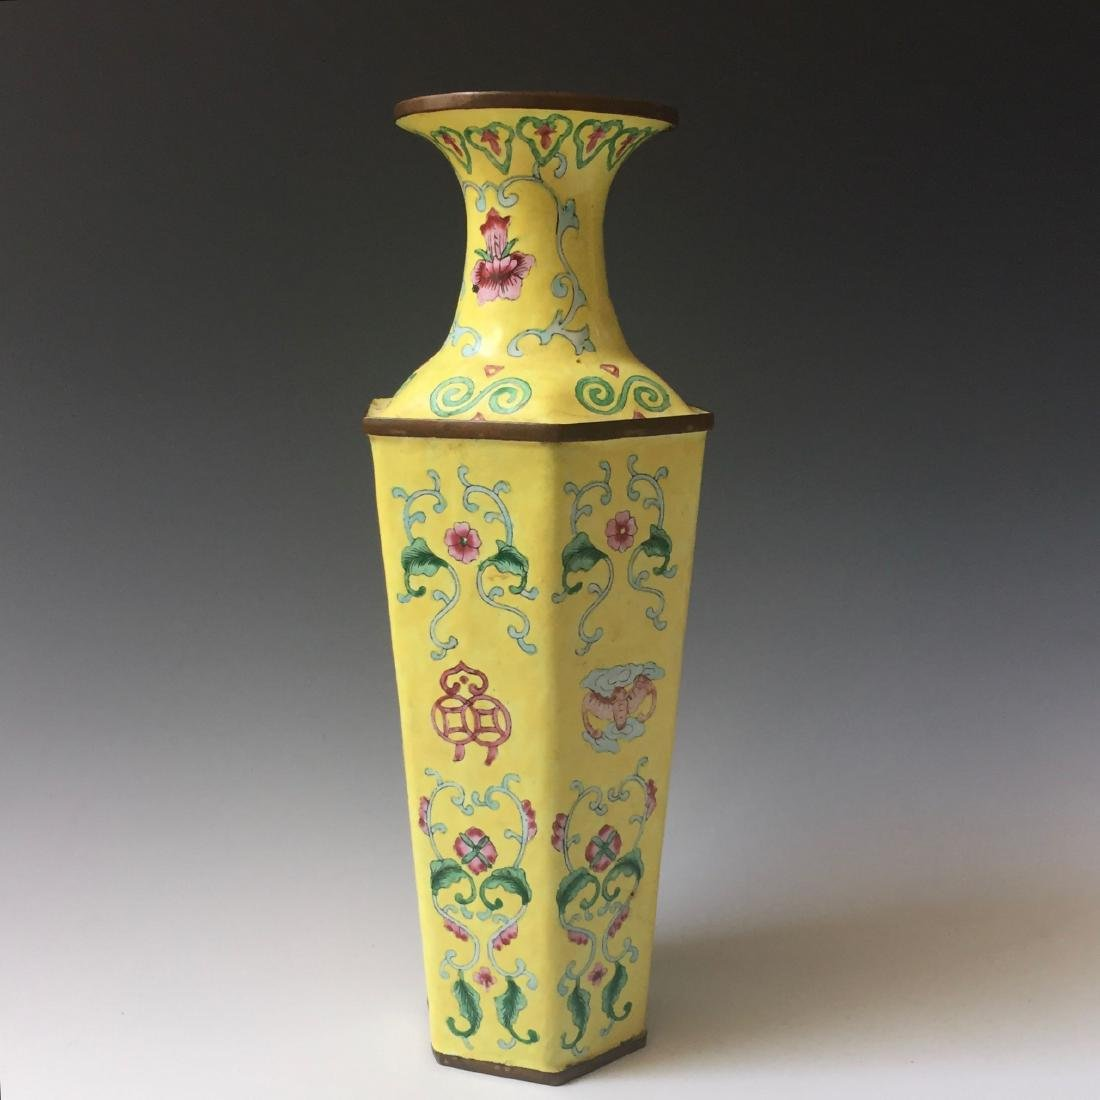 A FINE CHINESE YELLOW ENAMELLED VASE. 19C